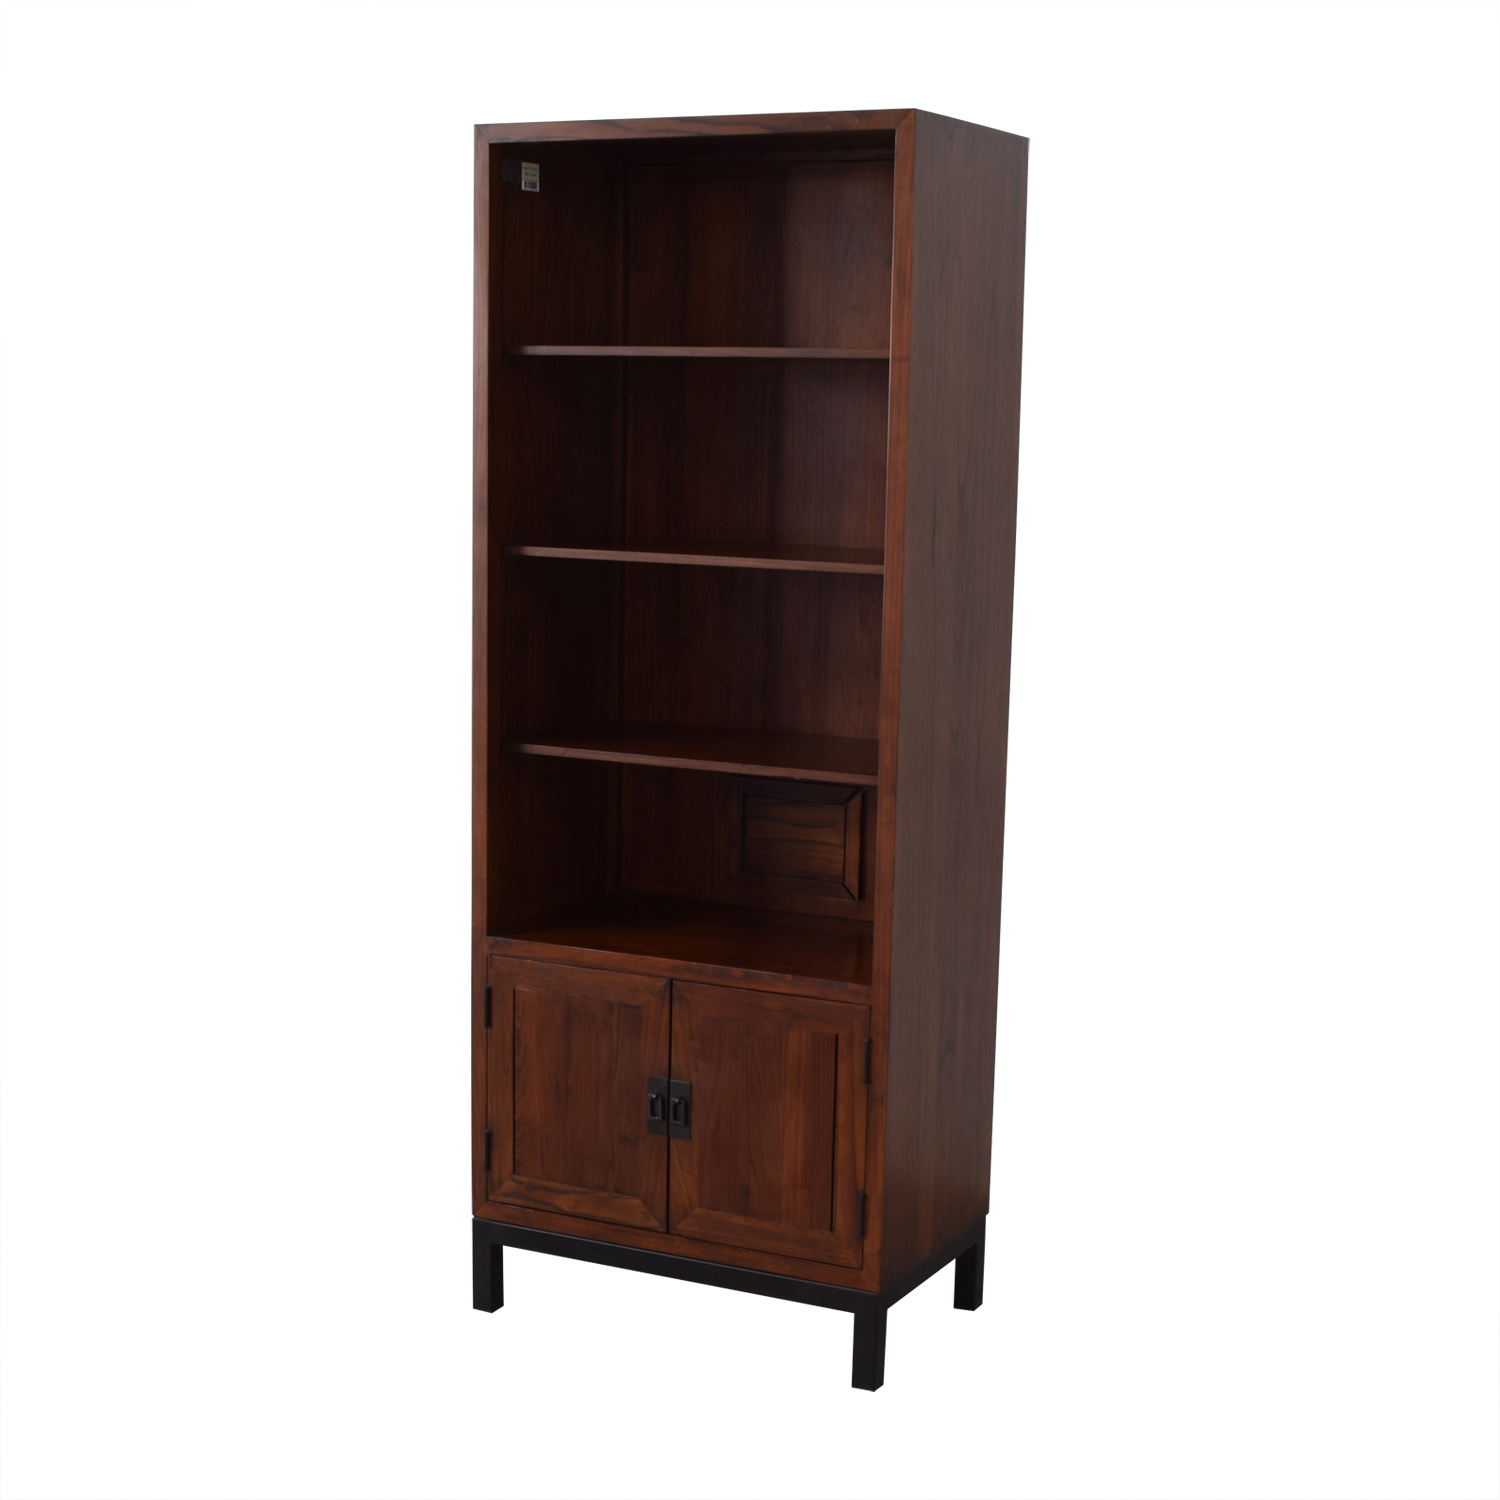 Room & Board Room & Board By Maria Yee Bookcase With Doors & Drawers coupon